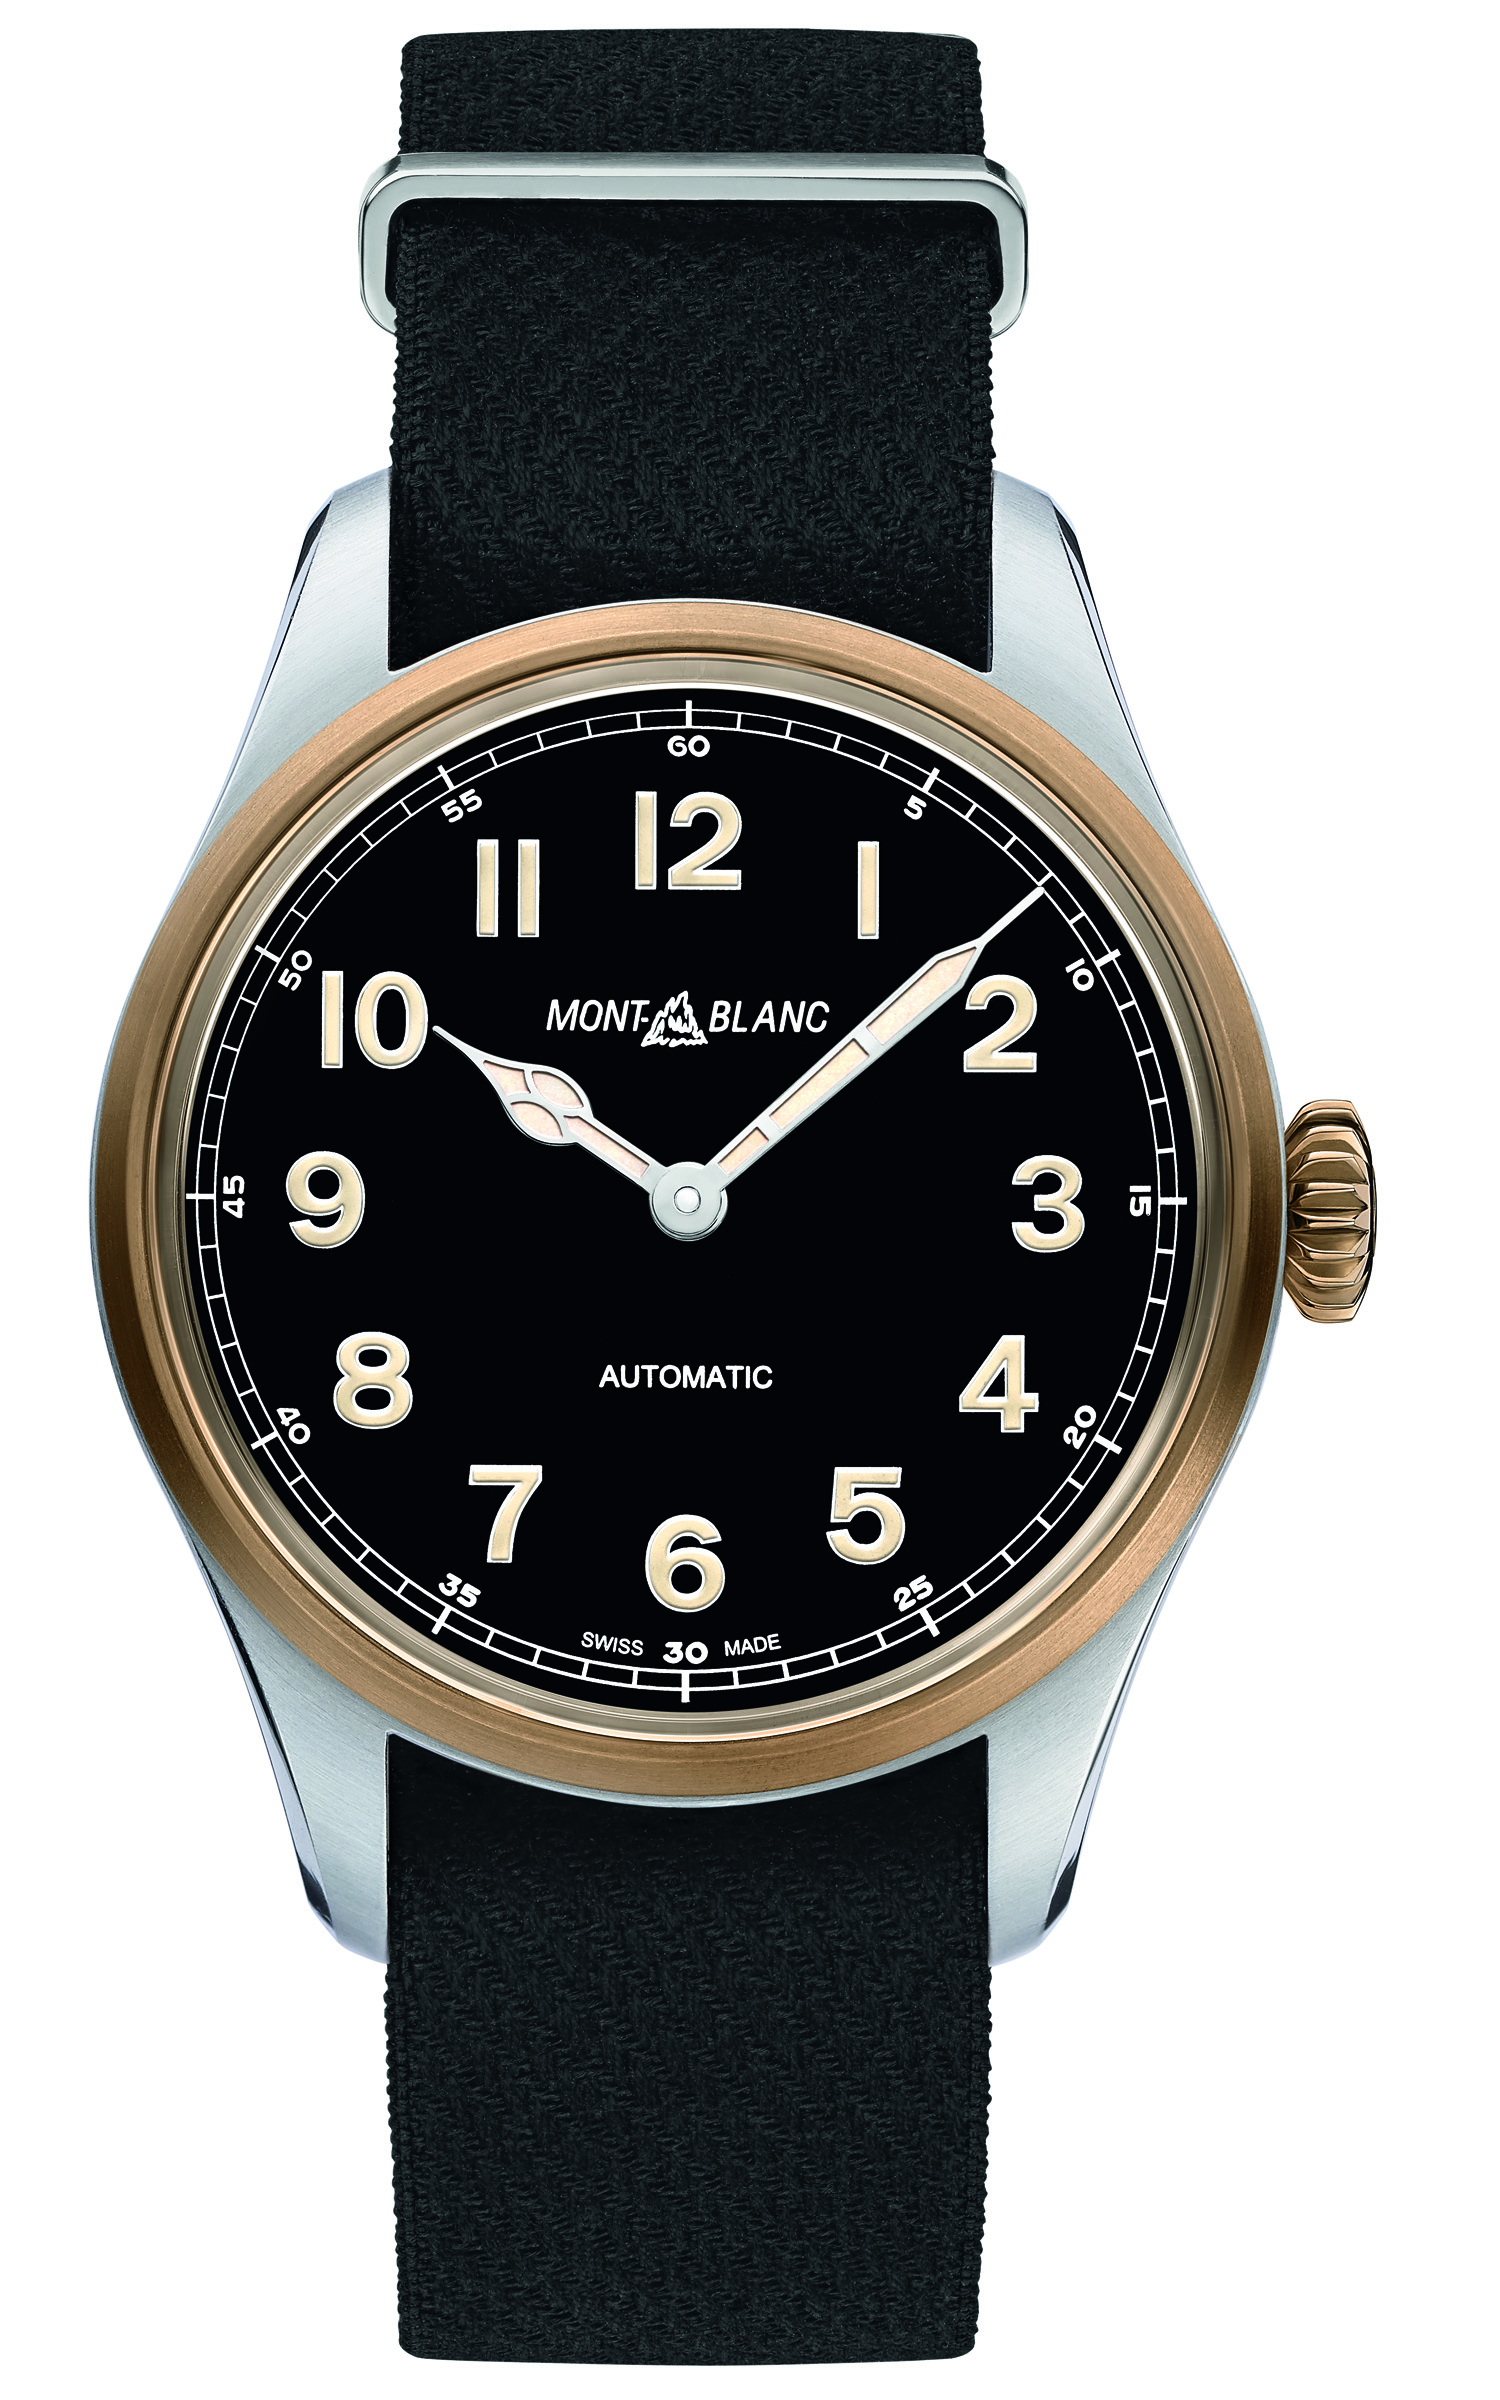 Montblanc 1858 Automatic. The Montblanc 1858 Automatic is water resistant to 100 metres and is certified by the Montblanc Laboratory Test 500.